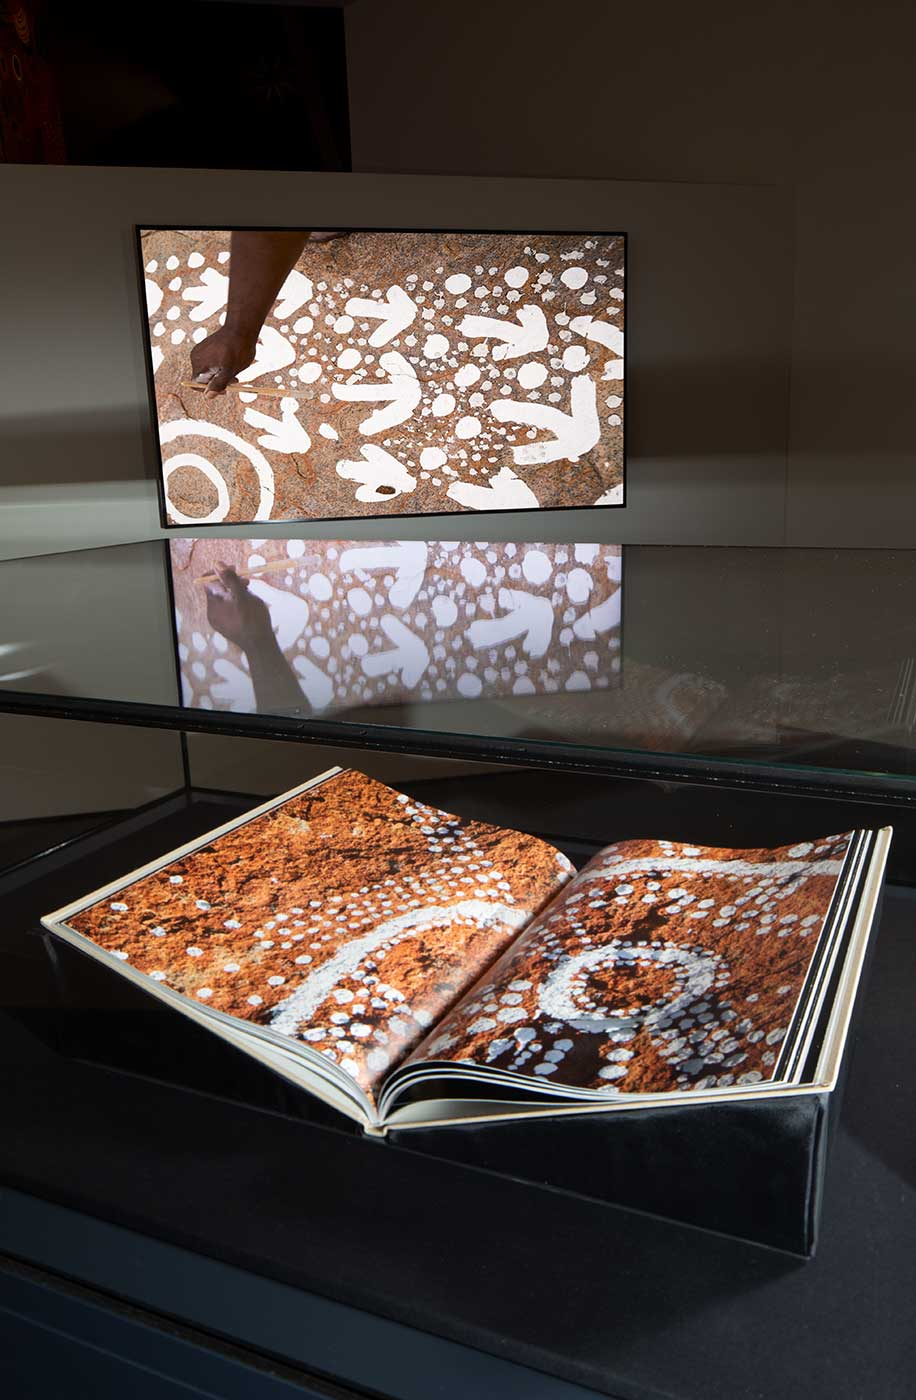 An image of a book open at a picture of indigenous artwork. - click to view larger image